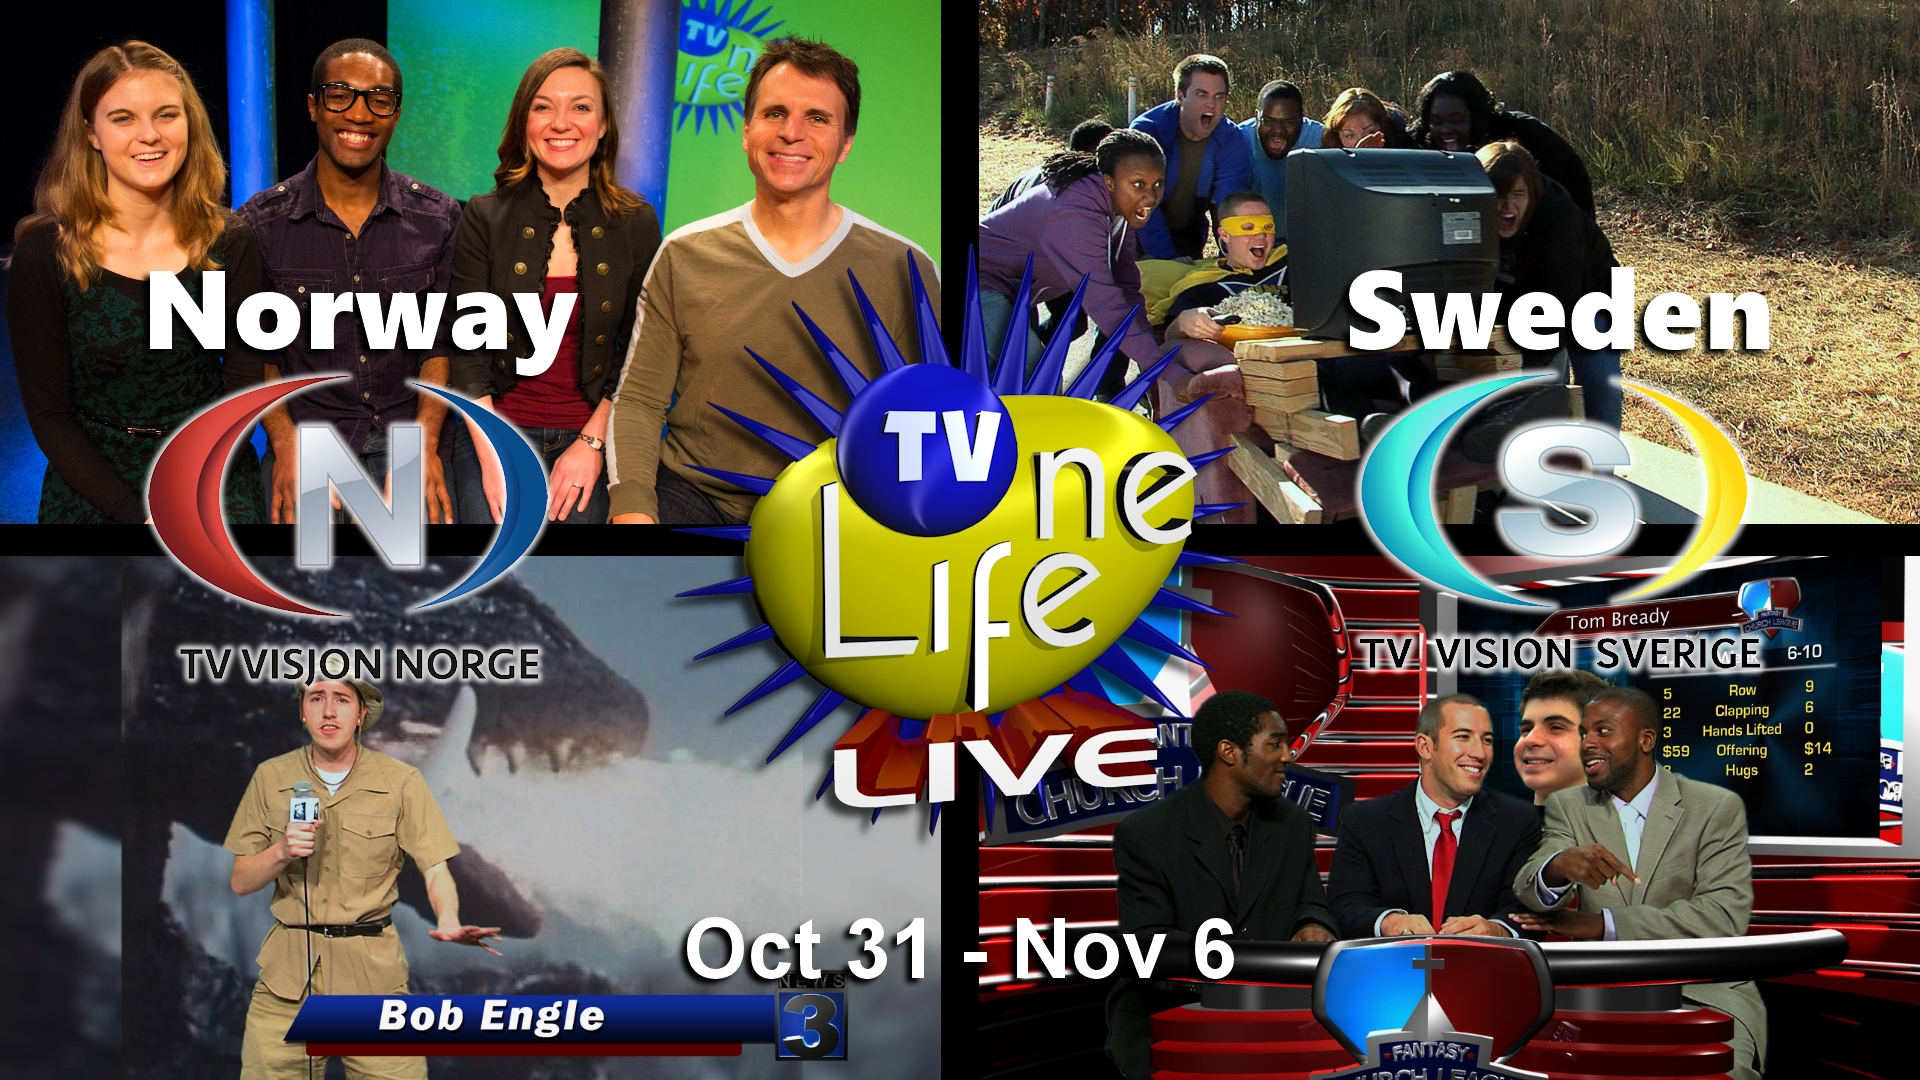 TV One Life Live in Norway & Sweden